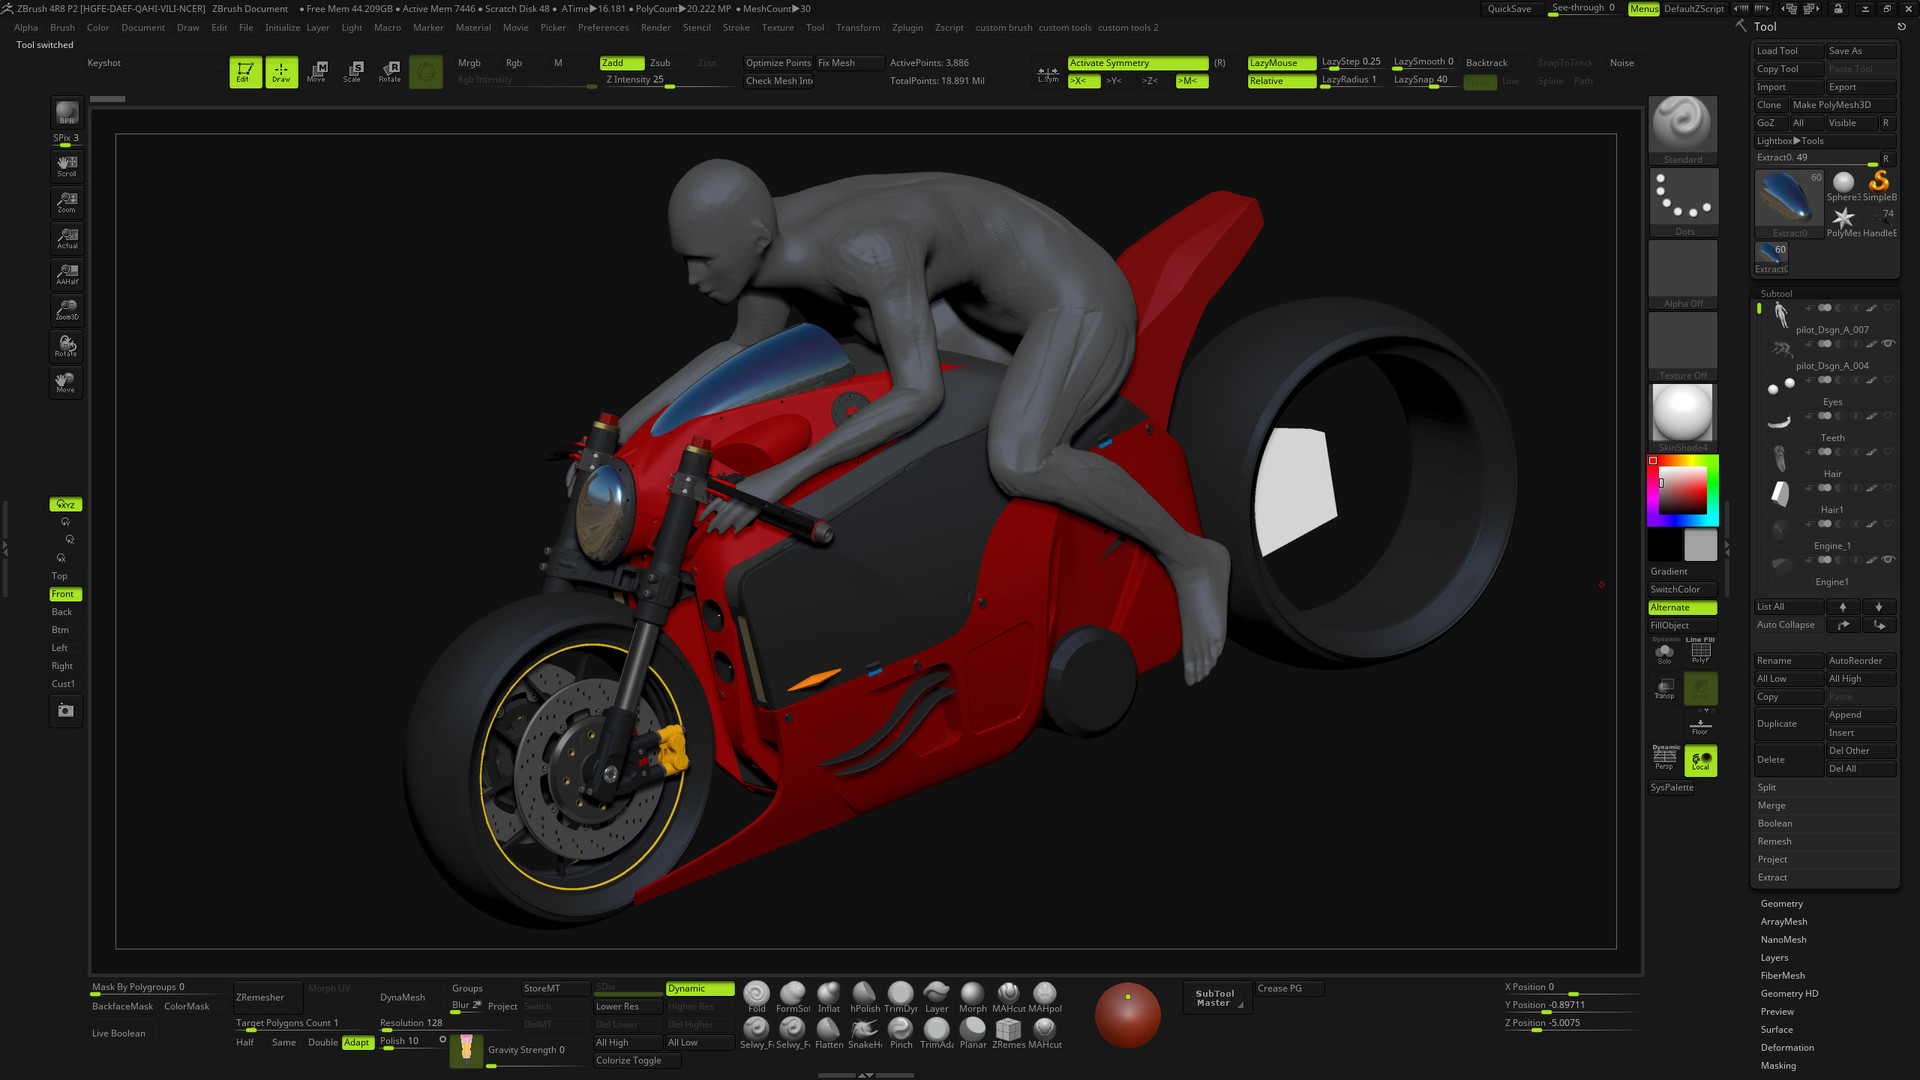 a lot changed for the bike's head design.. felt that the circular design was not unique enough